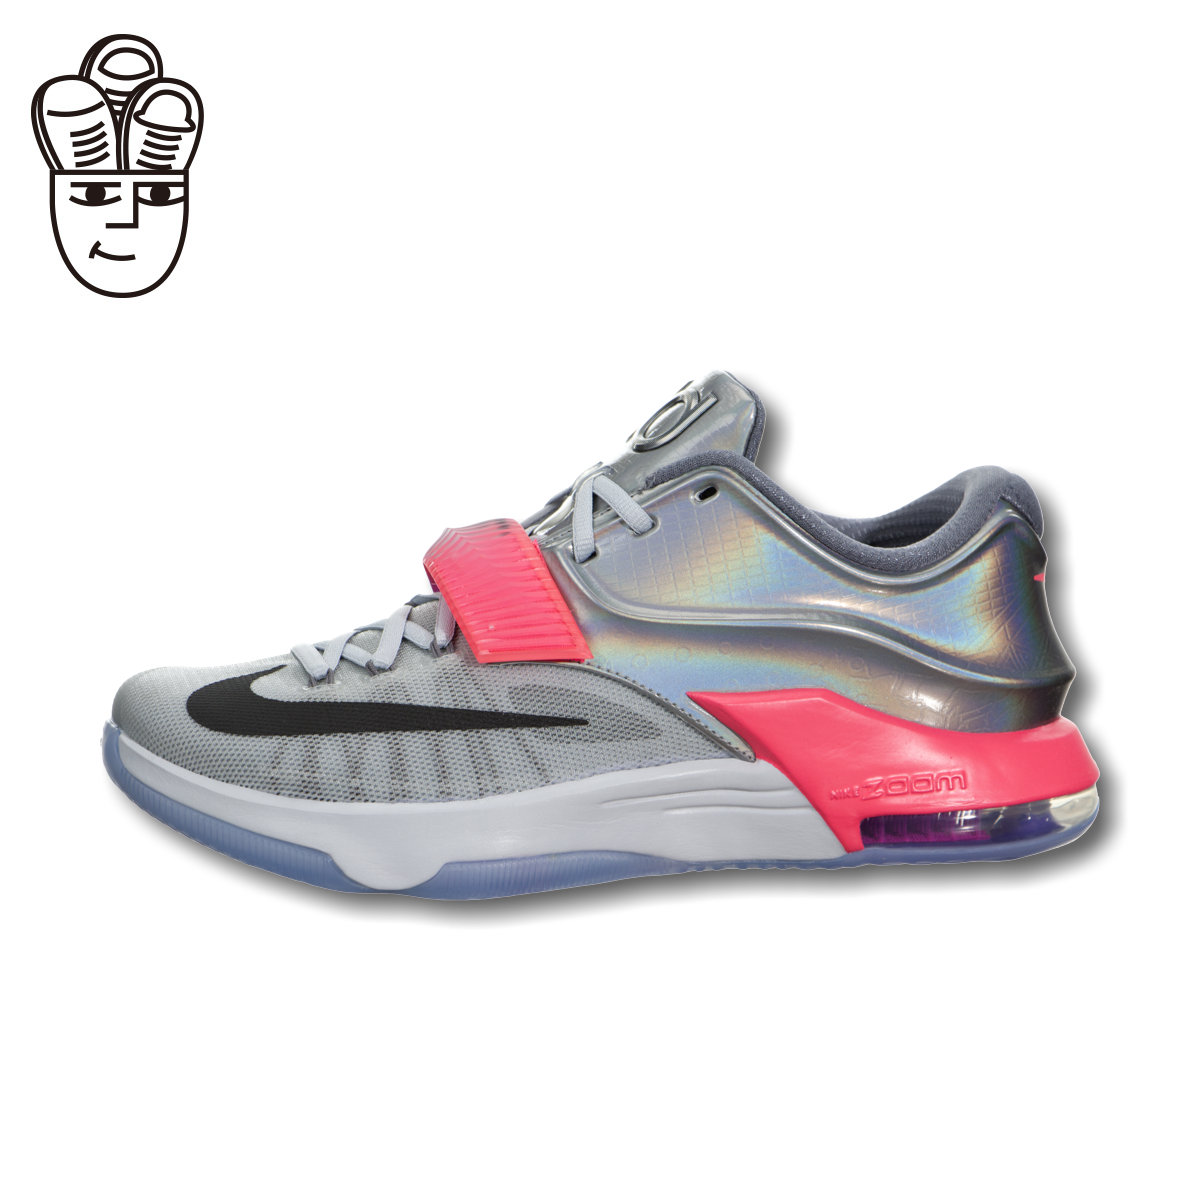 hot sale online 23c82 1e54e Get Quotations · Nike kd vii durant nike 7 on behalf of the whole star  reeboks men basketball shoes